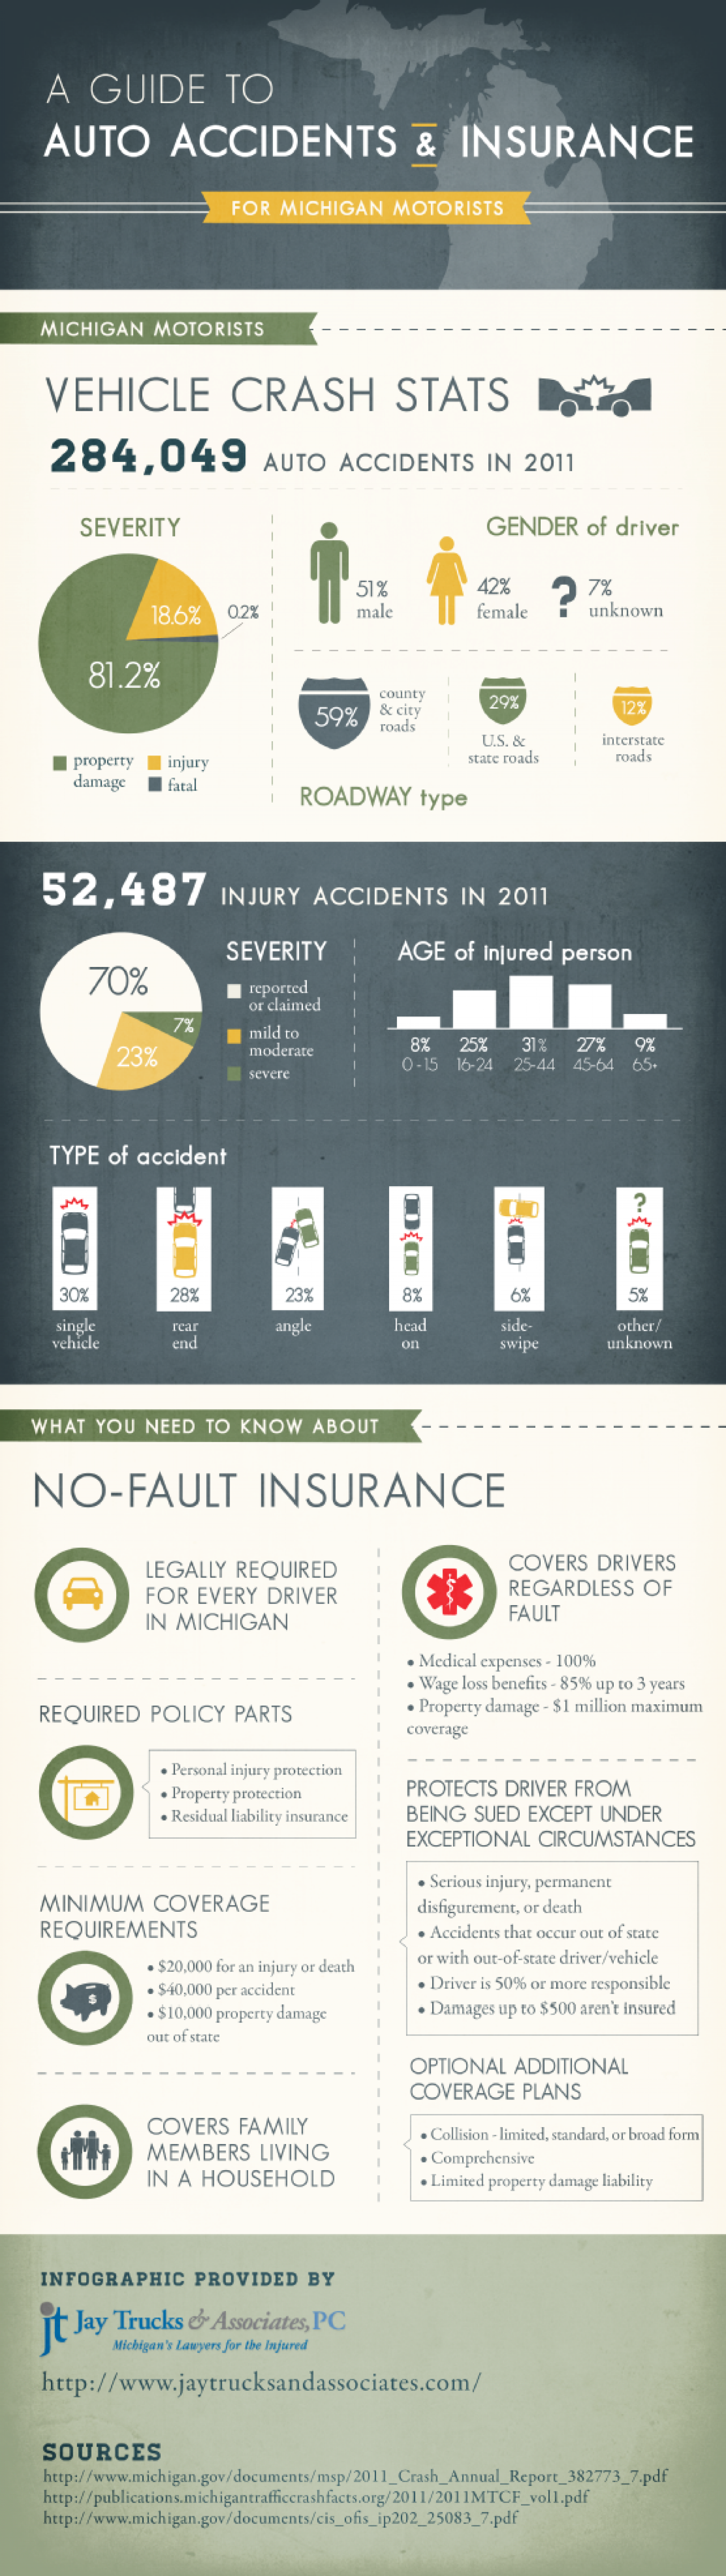 A Guide to Auto Accidents and Insurance for Michigan Motorists Infographic